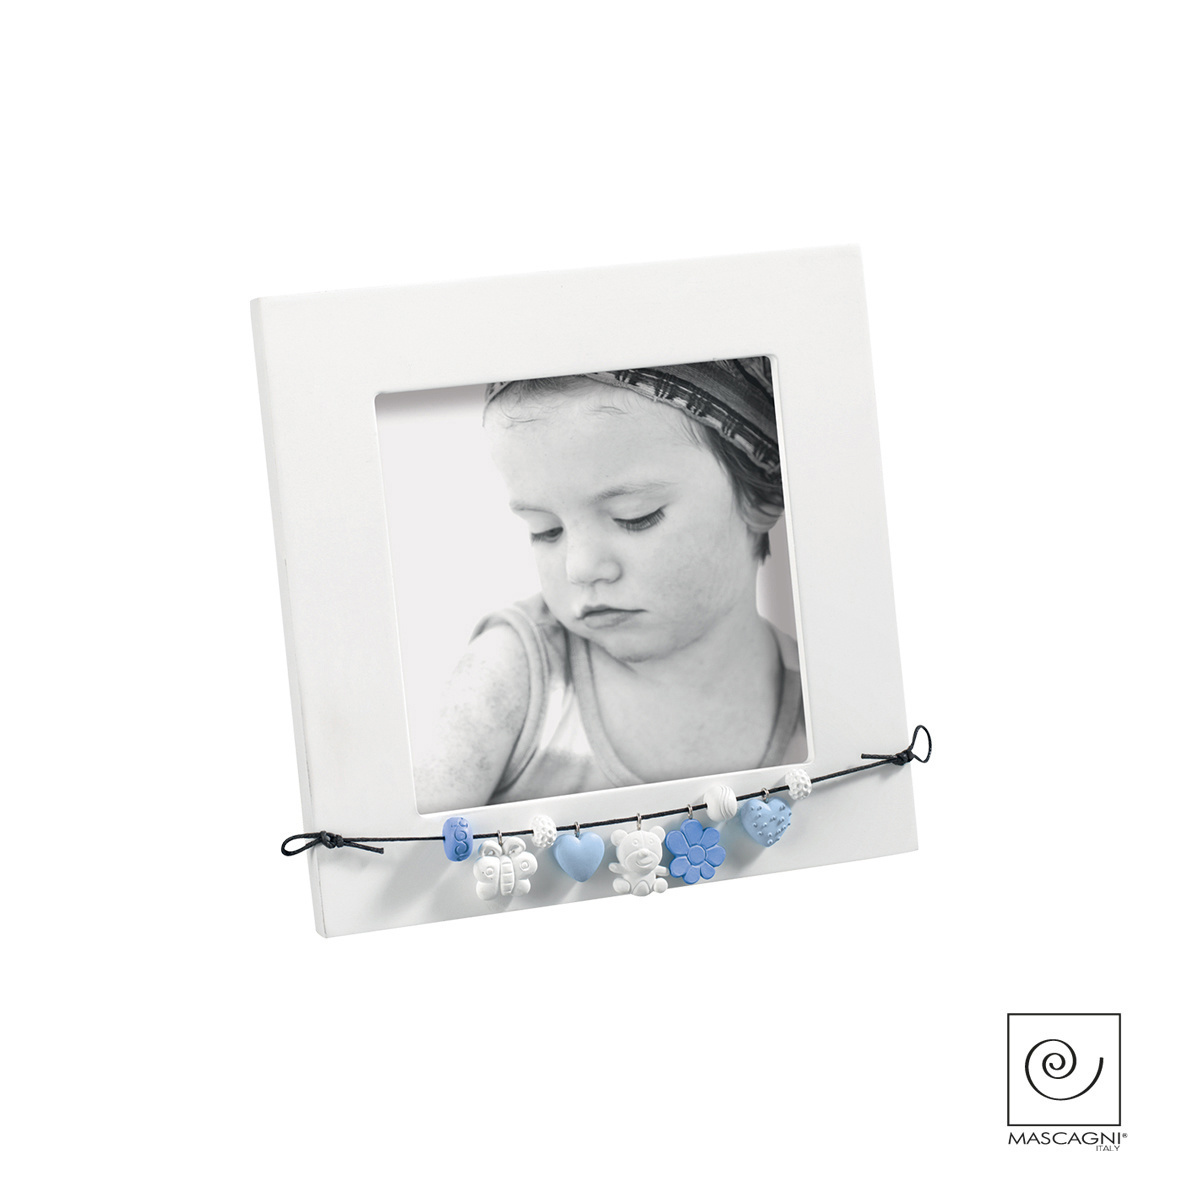 Art Mascagni A717 PHOTO FRAME 13X13 - COL.BLUE